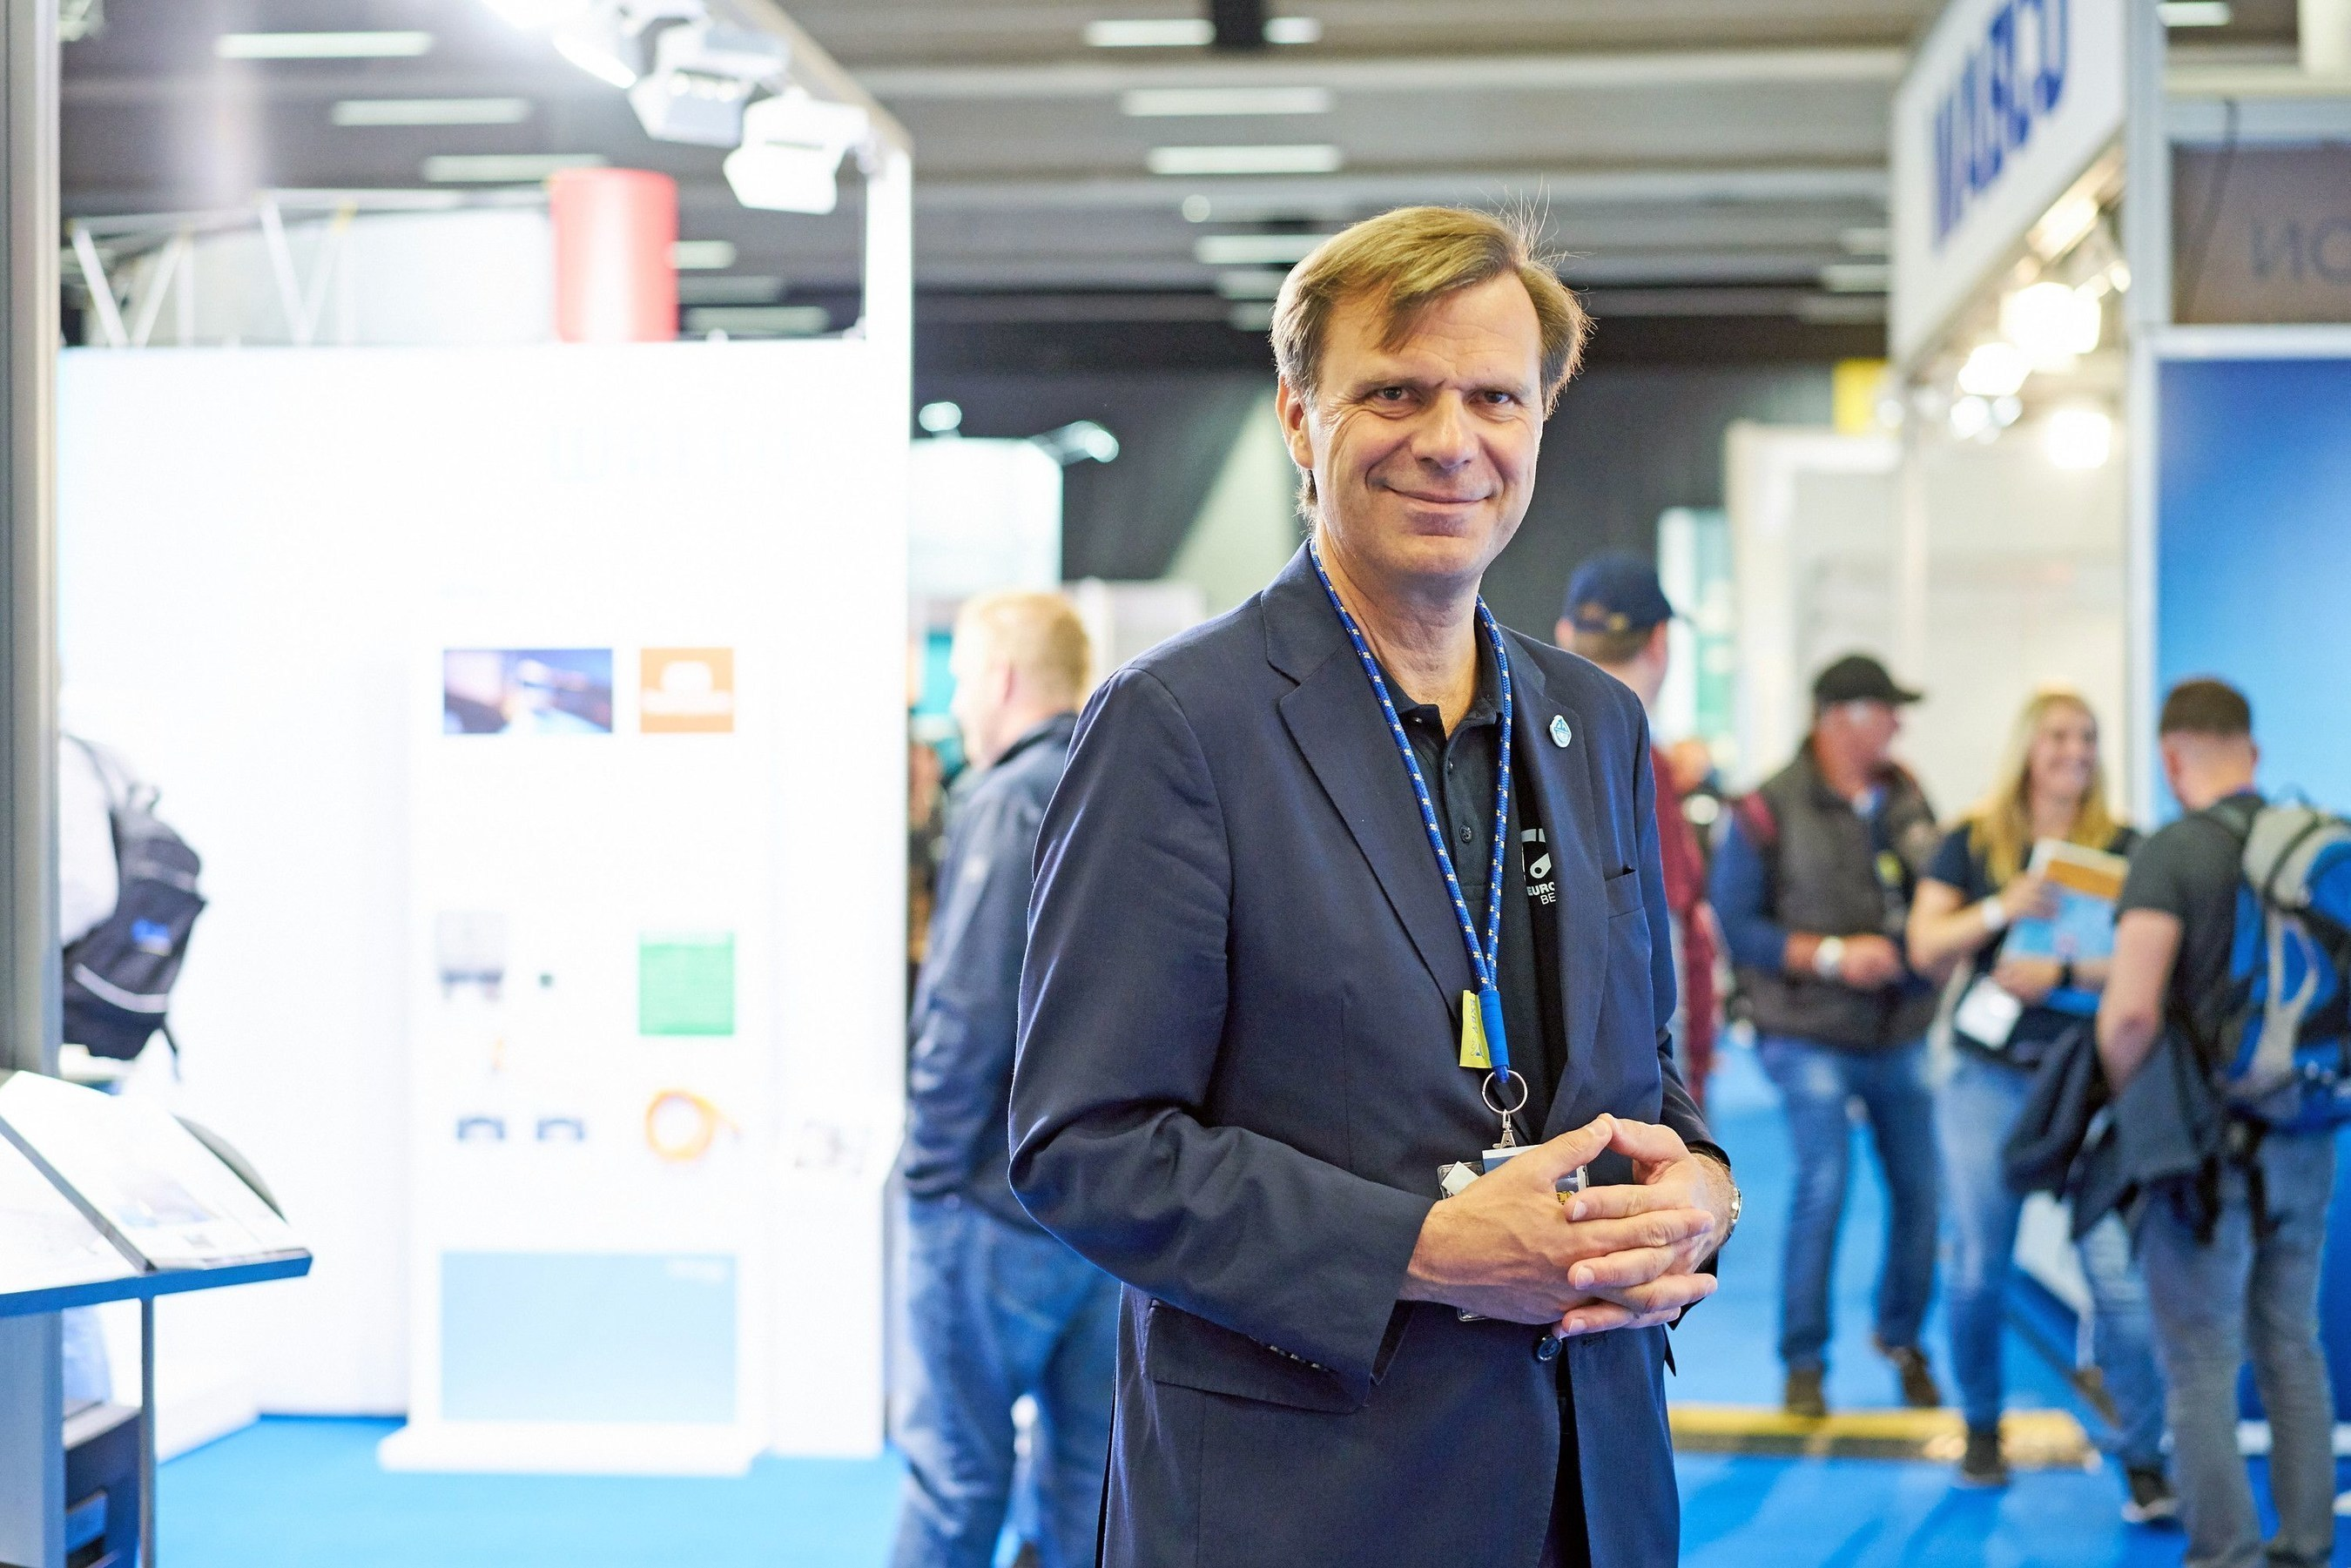 """EUROPART CEO Pierre Fleck welcomed more than 3,500 visitors to the first EUROPART in-house exhibition """"EUROPART BESTZEIT"""" on July 2, 2016. With more than 2,500 square meters of exhibition space """"EUROPART BESTZEIT"""" is the biggest event of its kind in the commercial vehicle spare parts industry. (PRNewsFoto/EUROPART Holding GmbH)"""